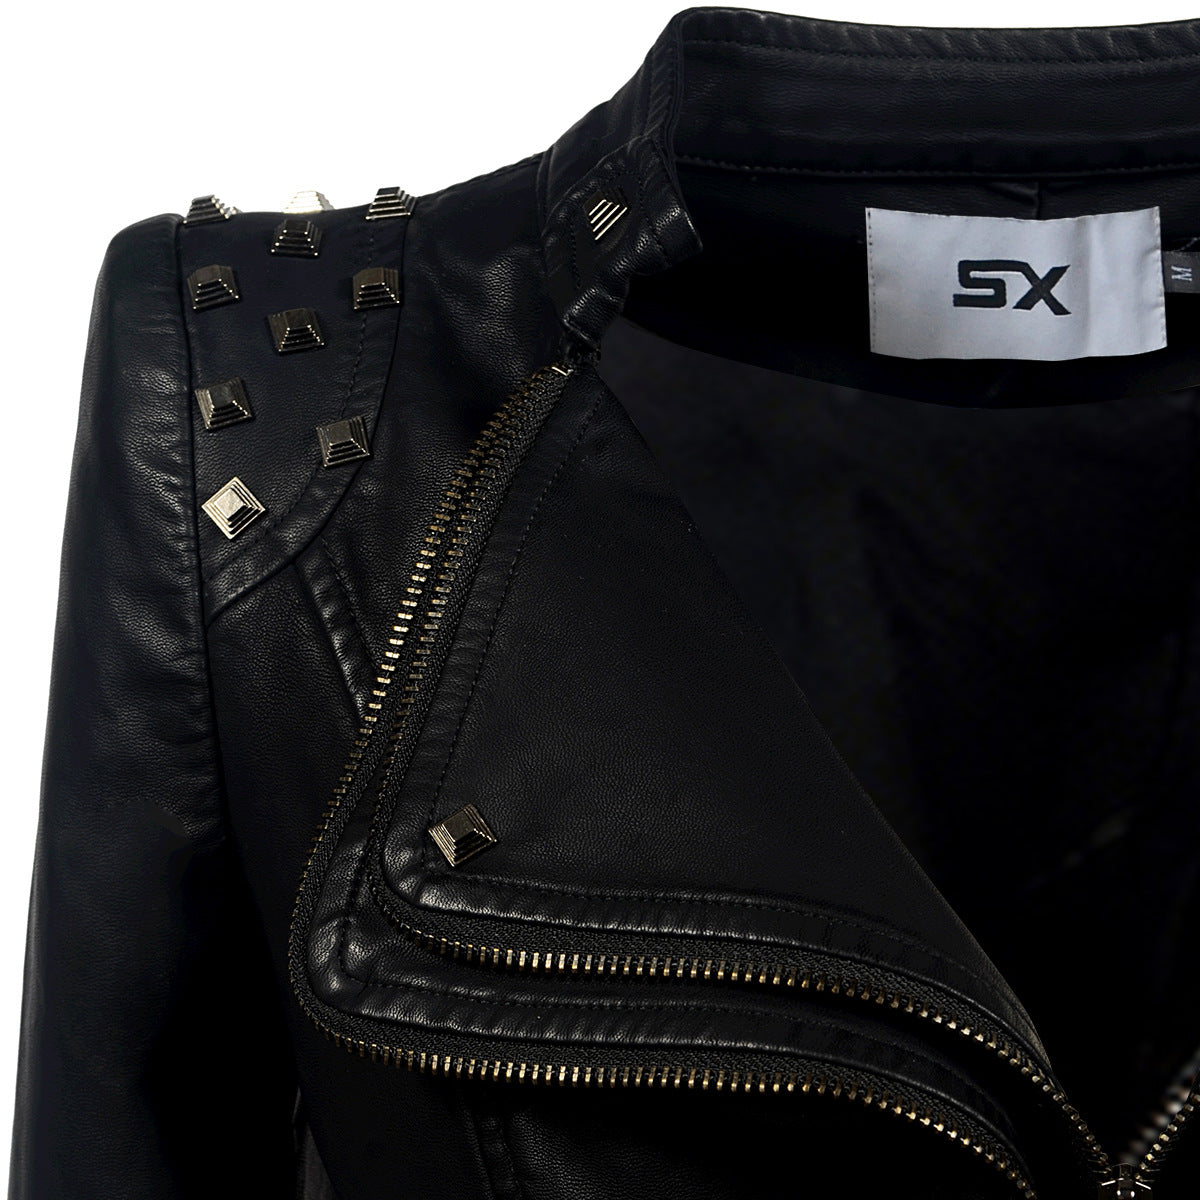 Rocker Chic Clothing / Studded Leather Jacket for Women / Black Motorcycle Rock Style - HARD'N'HEAVY